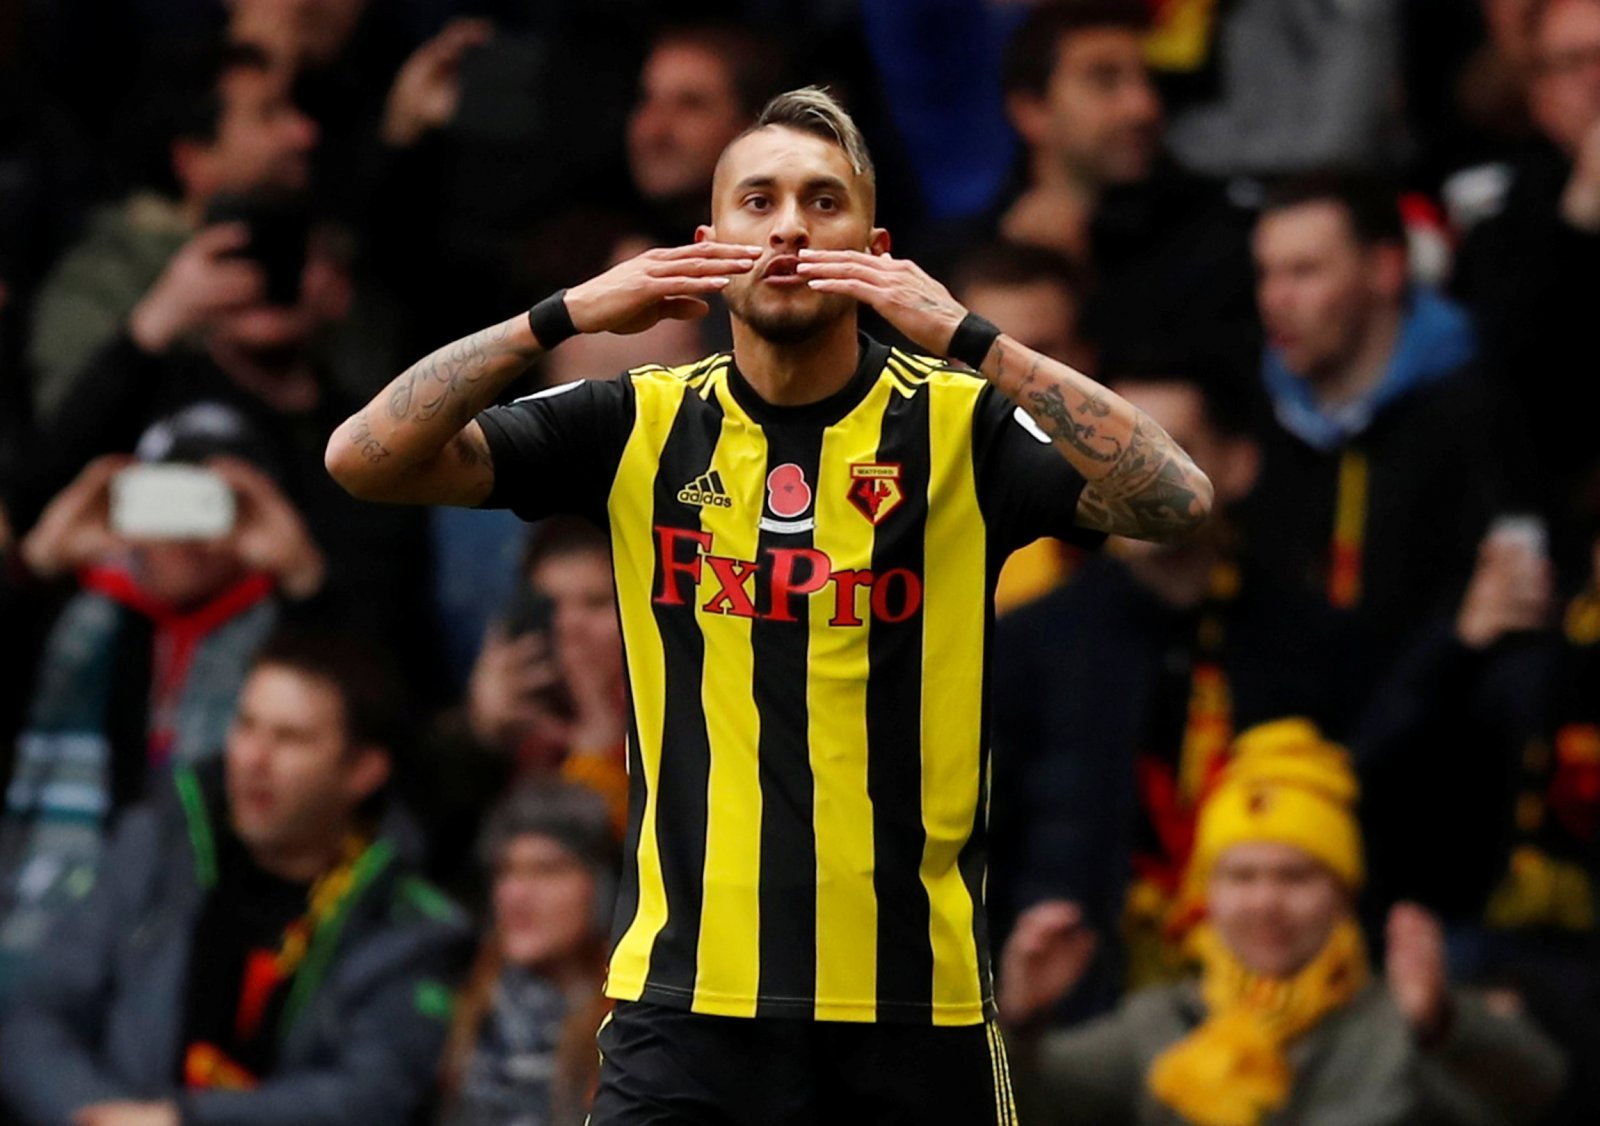 Introducing: Roberto Pereyra, the next player Marco Silva must poach from Watford